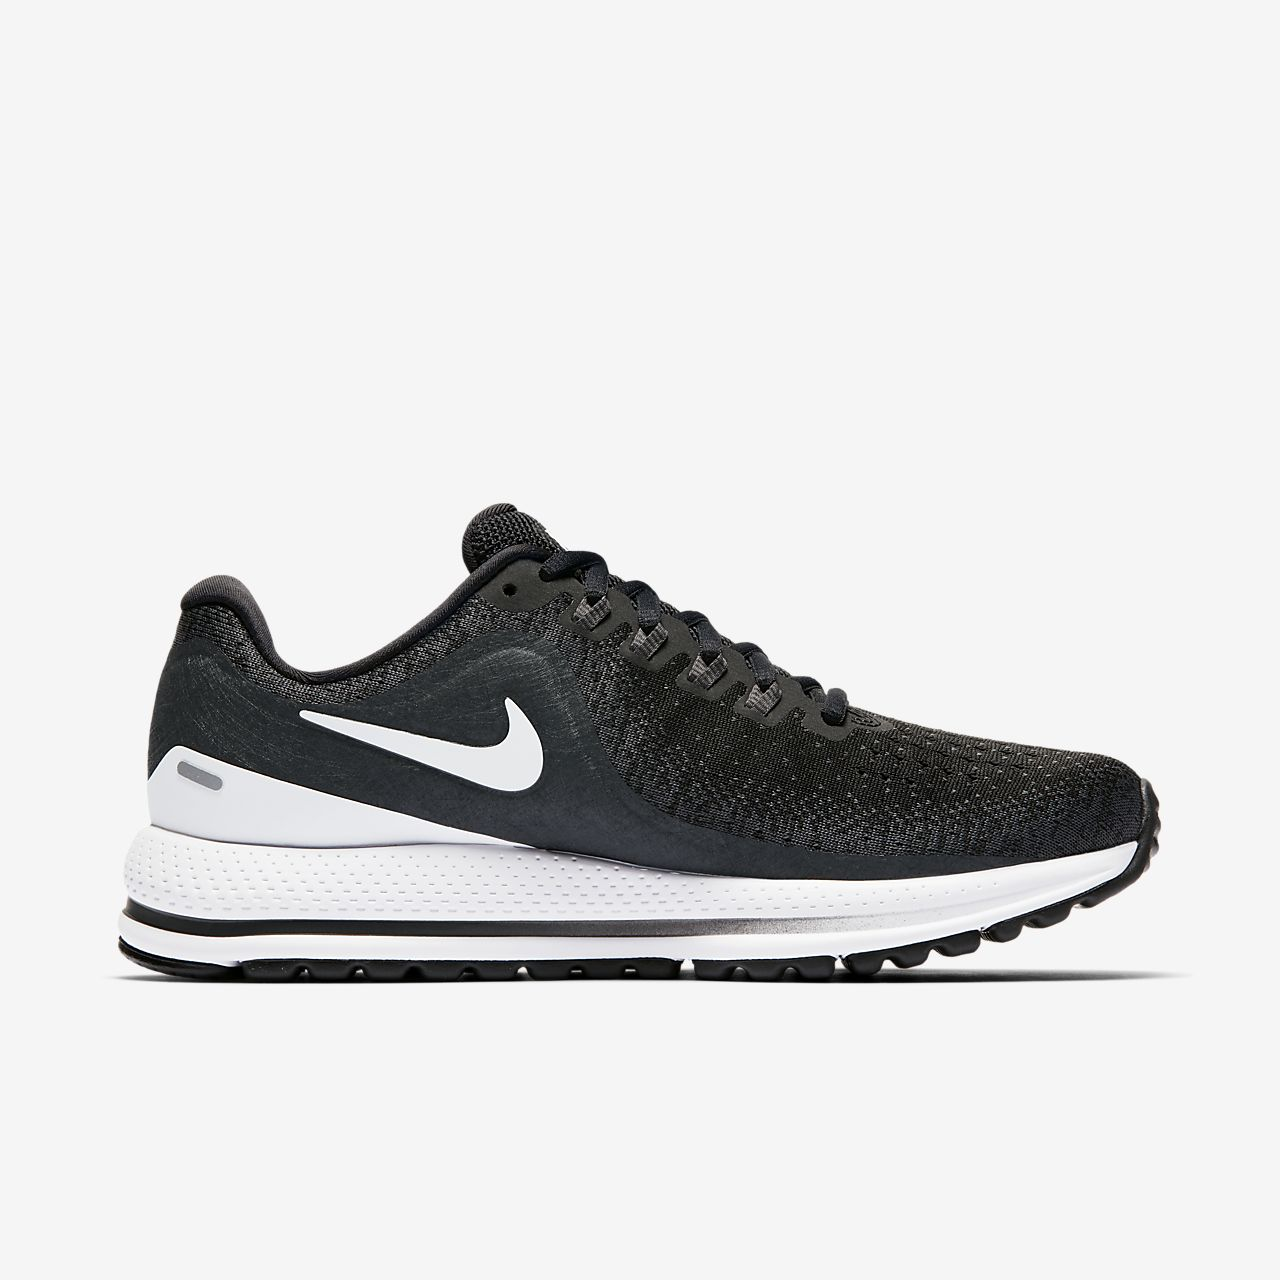 Air Dames Zoom Vomero 13 Chaussures De Course Nike